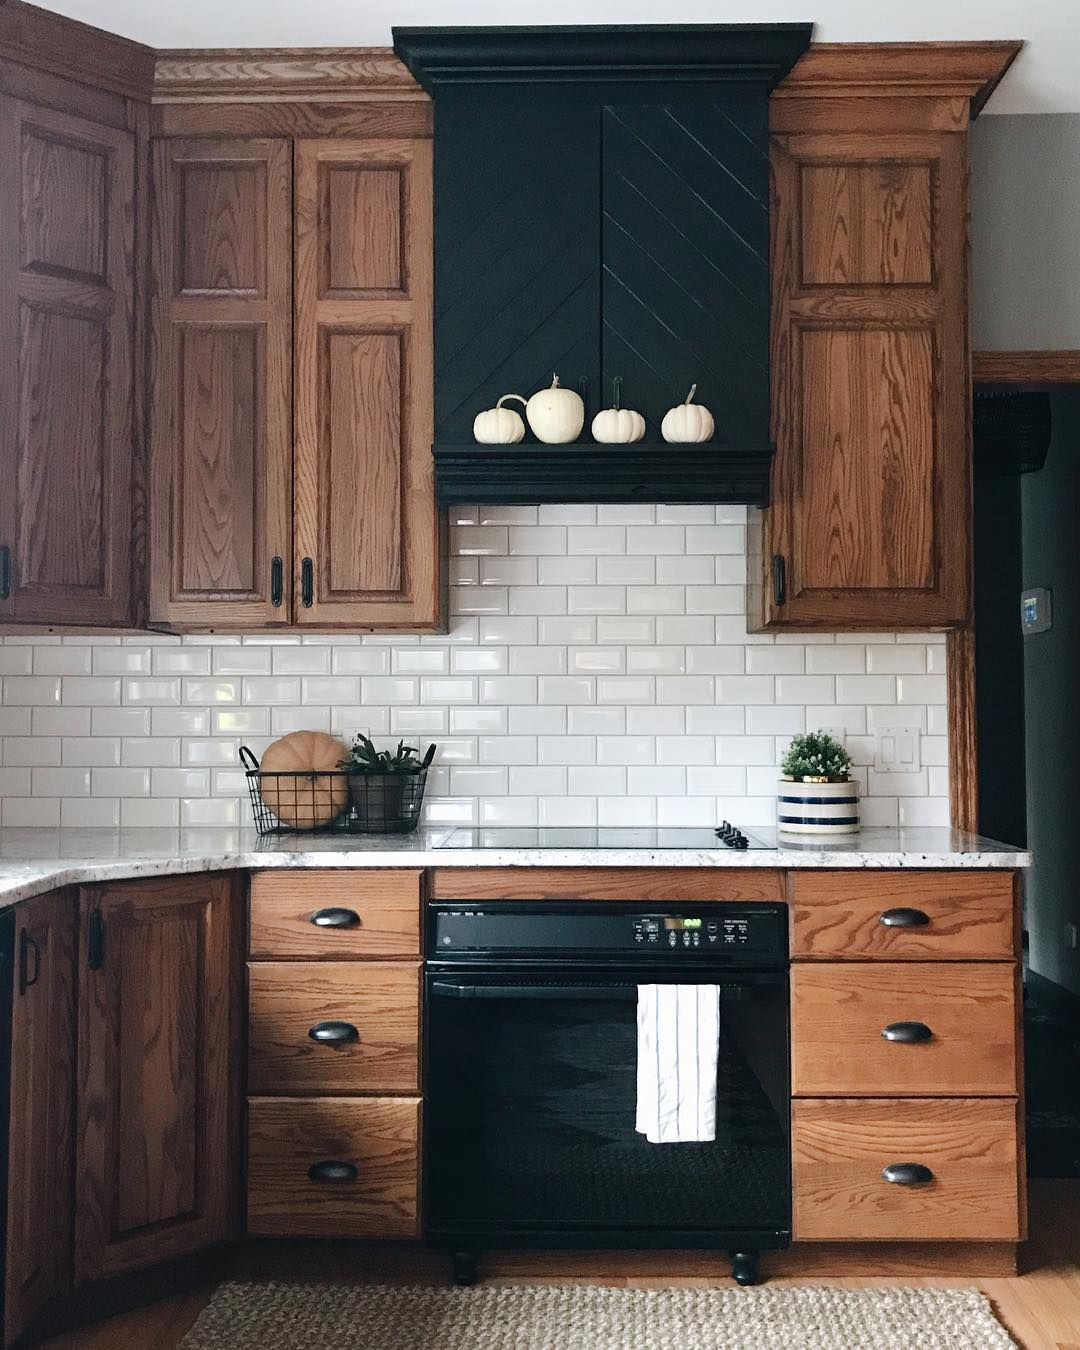 Kitchen Cabinets Oak: Pin By Melanie Westphal On Kitchen Makeover In 2019